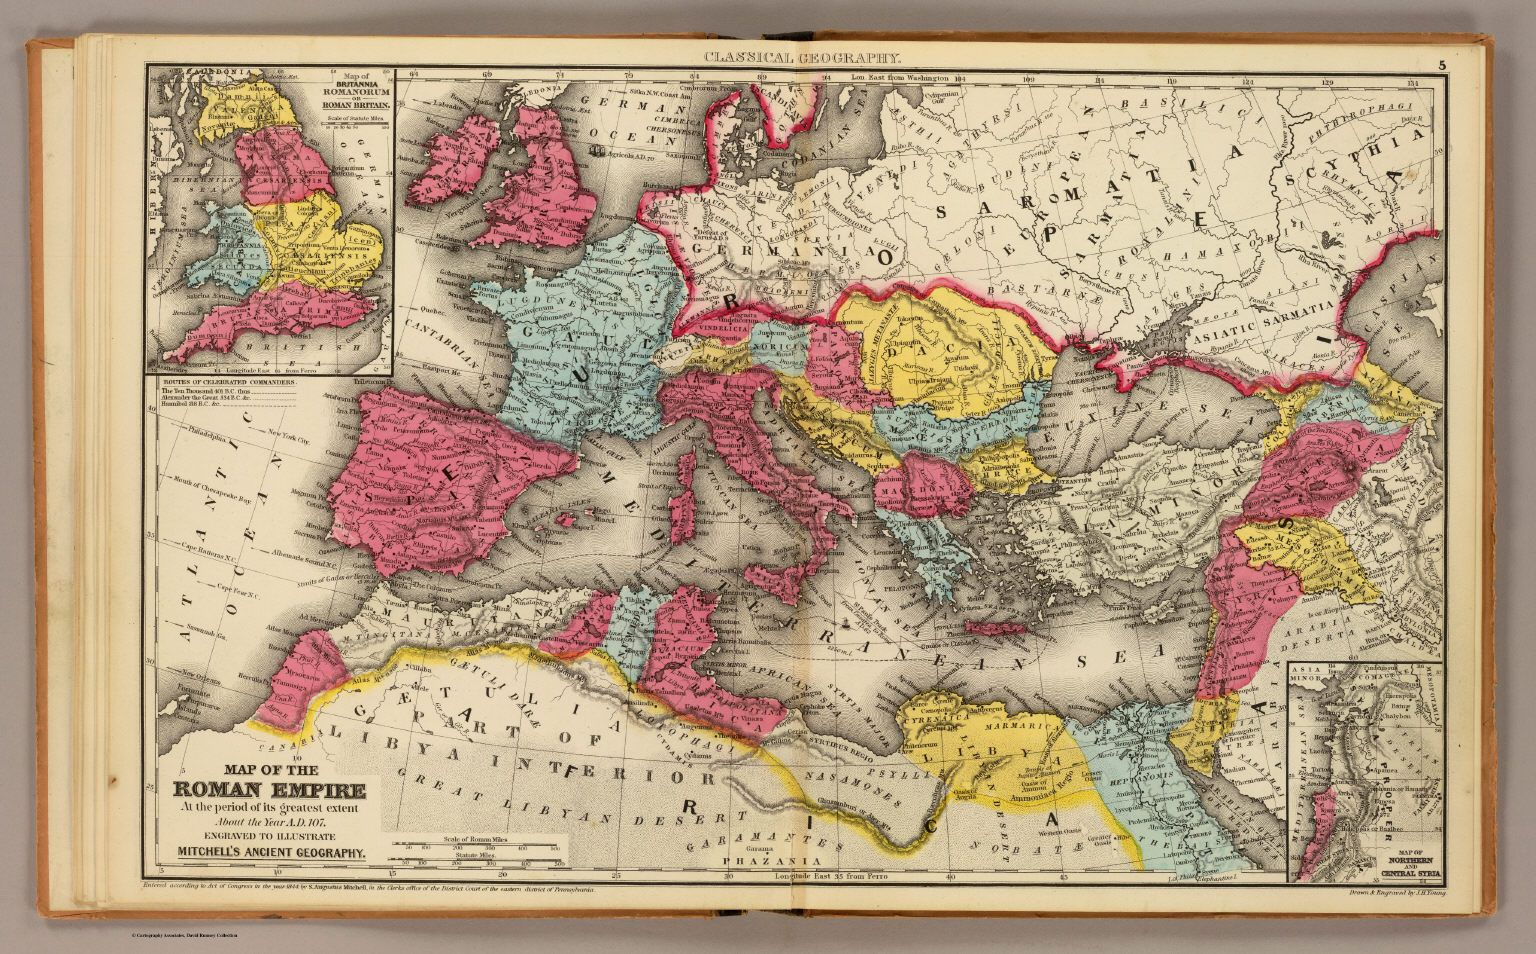 roman emipre The byzantine empire (or eastern roman empire) was the name of the eastern remnant of the roman empire which survived into the middle ages its capital was constantinople, which today is in turkey and is now called istanbul.